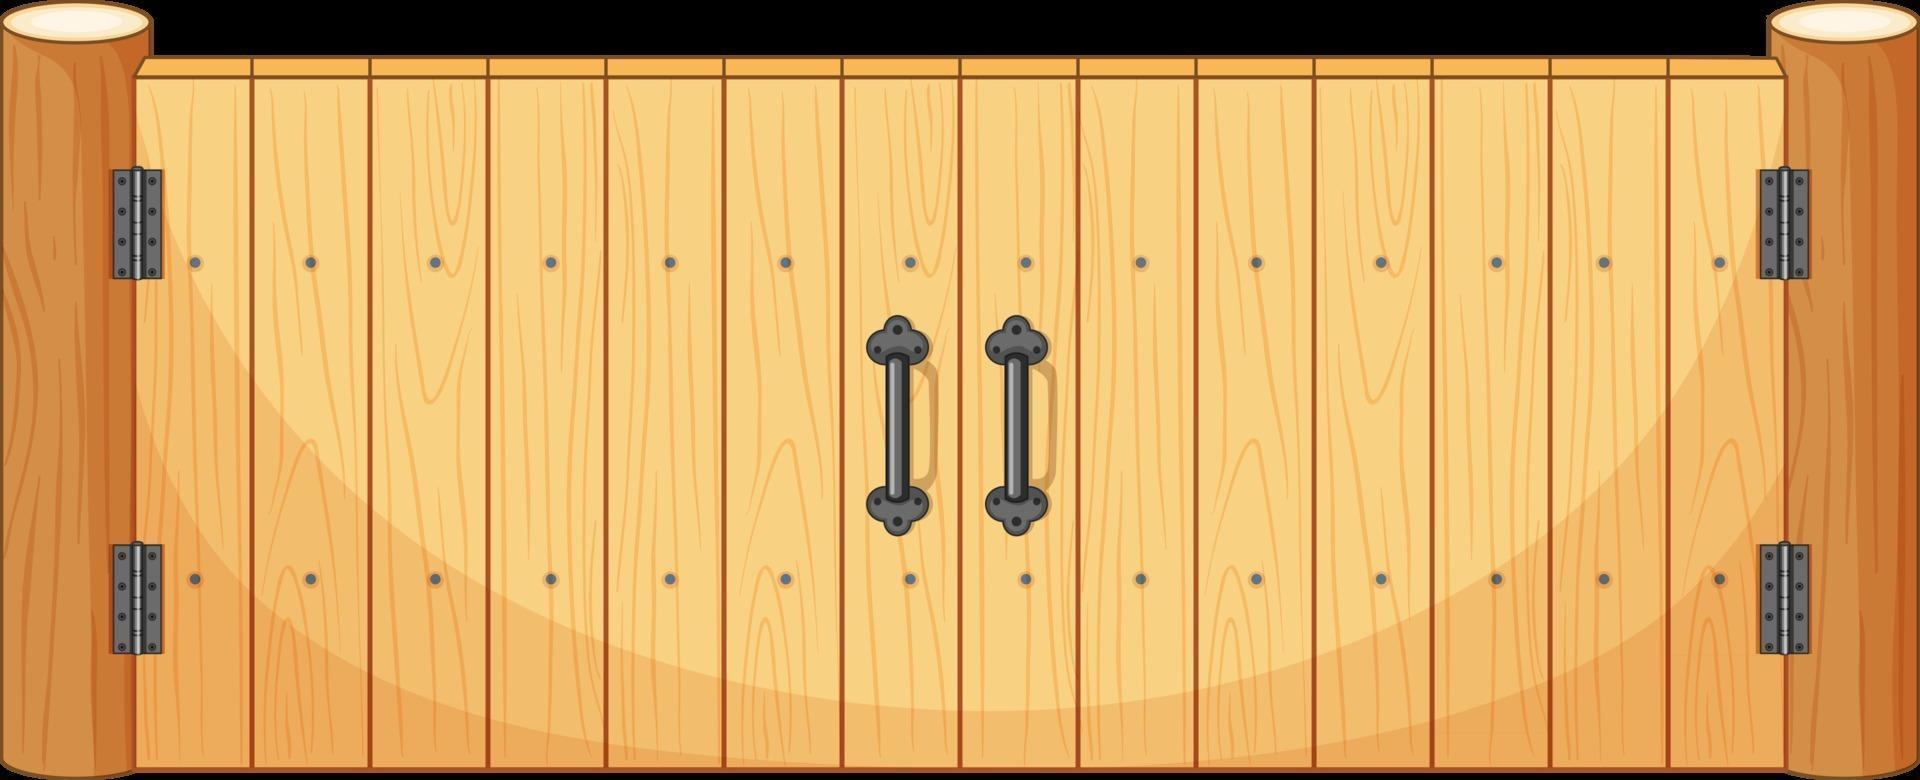 Wooden fence gate in cartoon style isolated vector